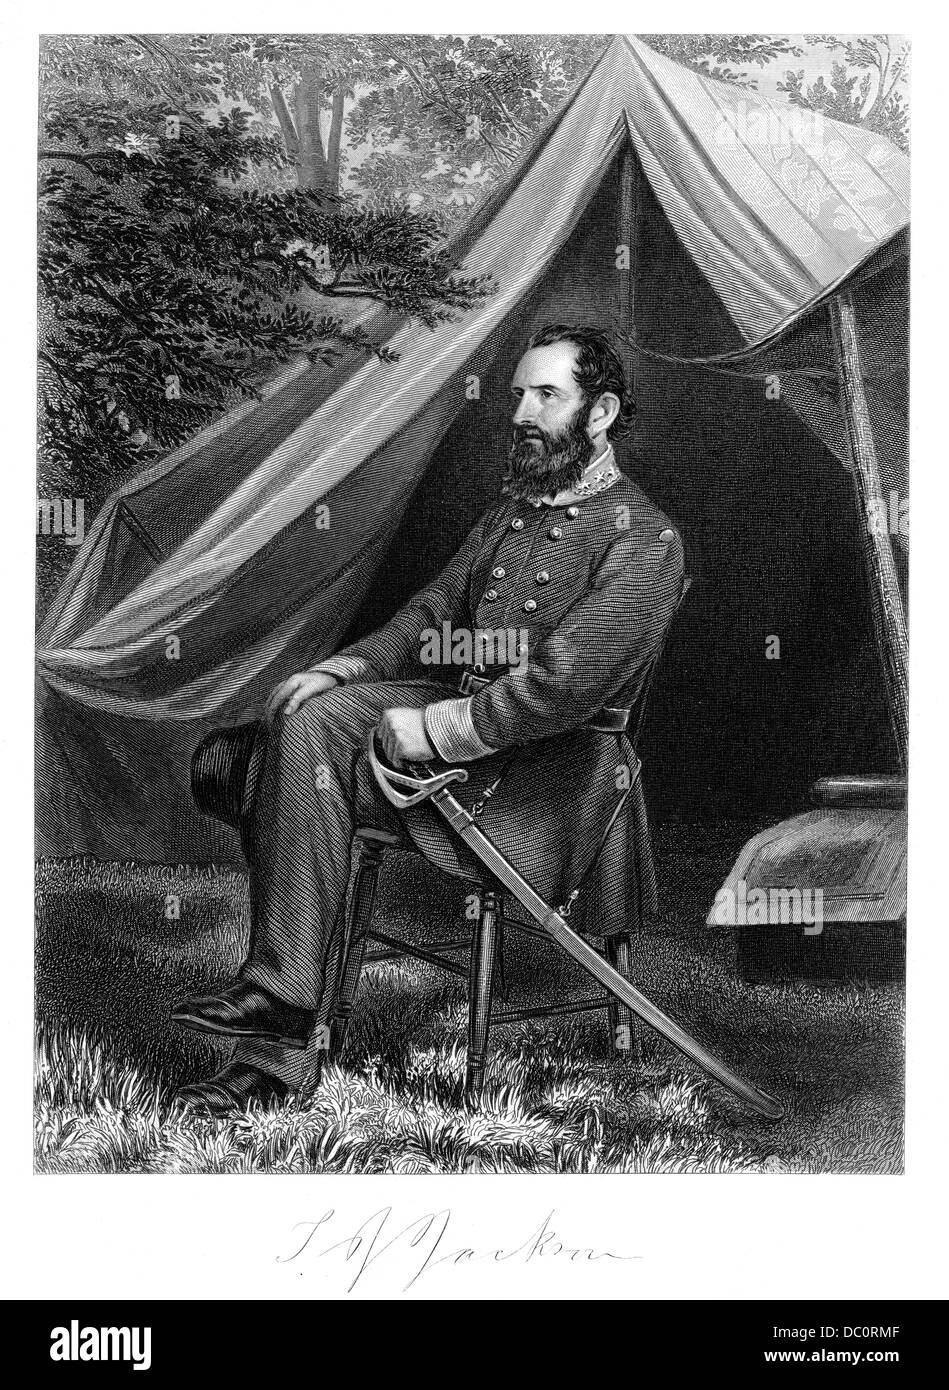 1800s 1860s PORTRAIT CONFEDERATE GENERAL THOMAS STONEWALL JACKSON DIED AFTER BATTLE OF CHANCELLORSVILLE MAY 1863 - Stock Image